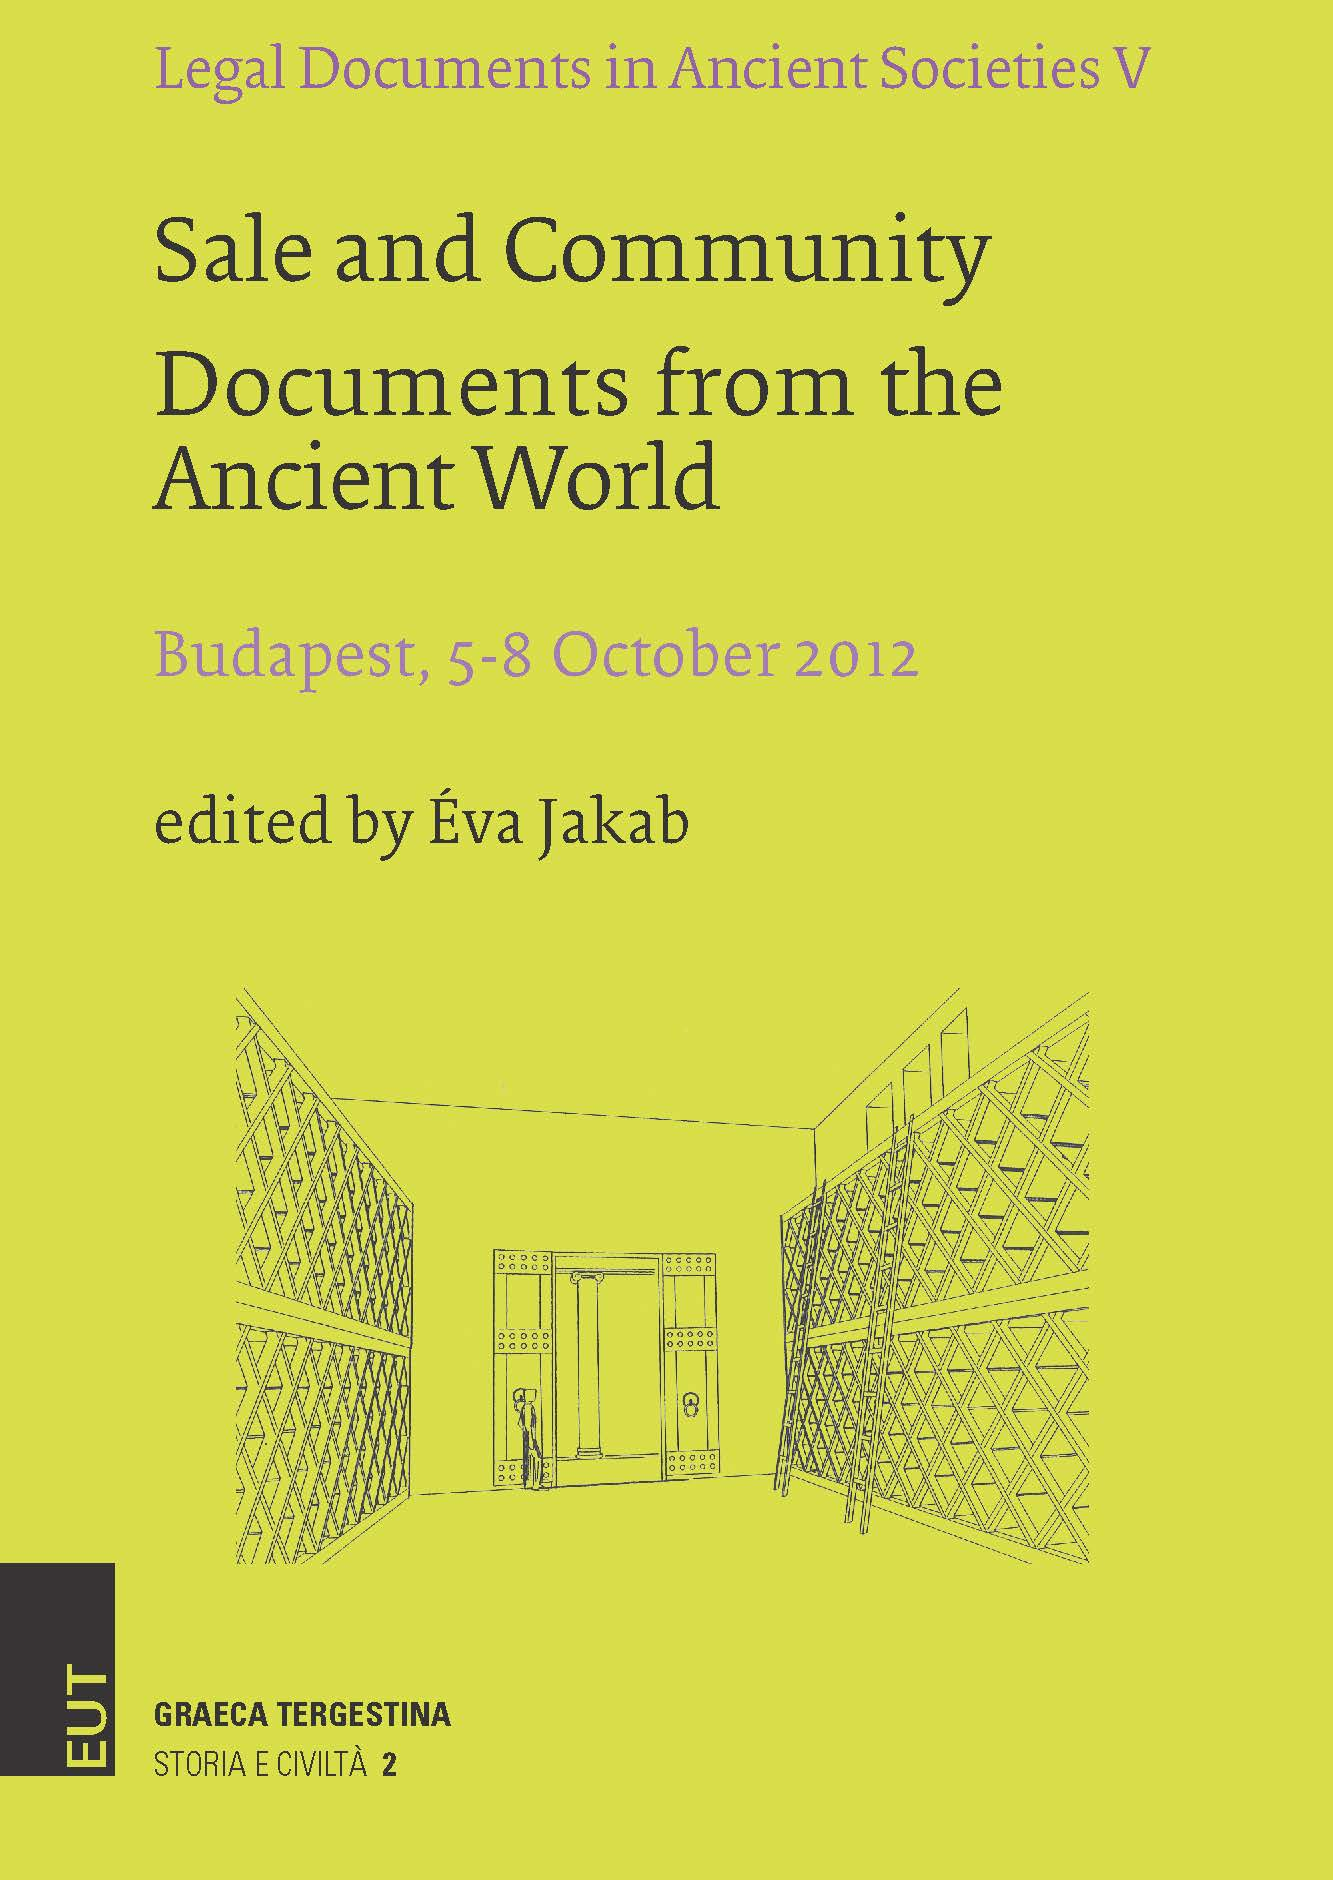 Sale and Community Documents from the Ancient World